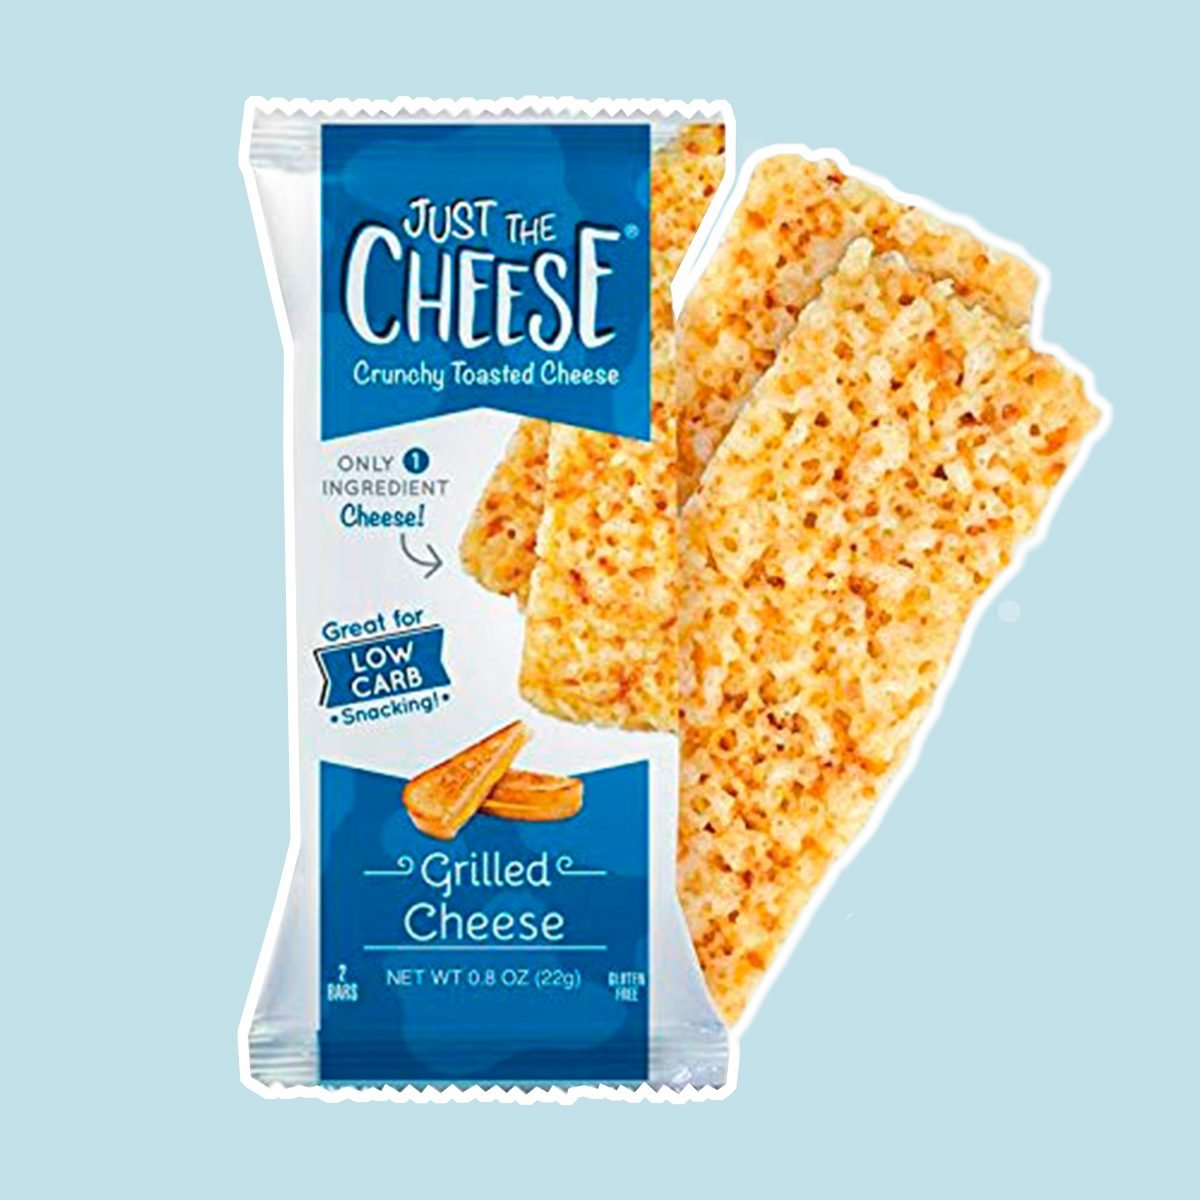 Just the Cheese Bars, Crunchy Baked Low Carb Snack Bars. 100% Natural Cheese. High Protein and Gluten Free, Grilled Cheese (12 Two-Bar Packs)